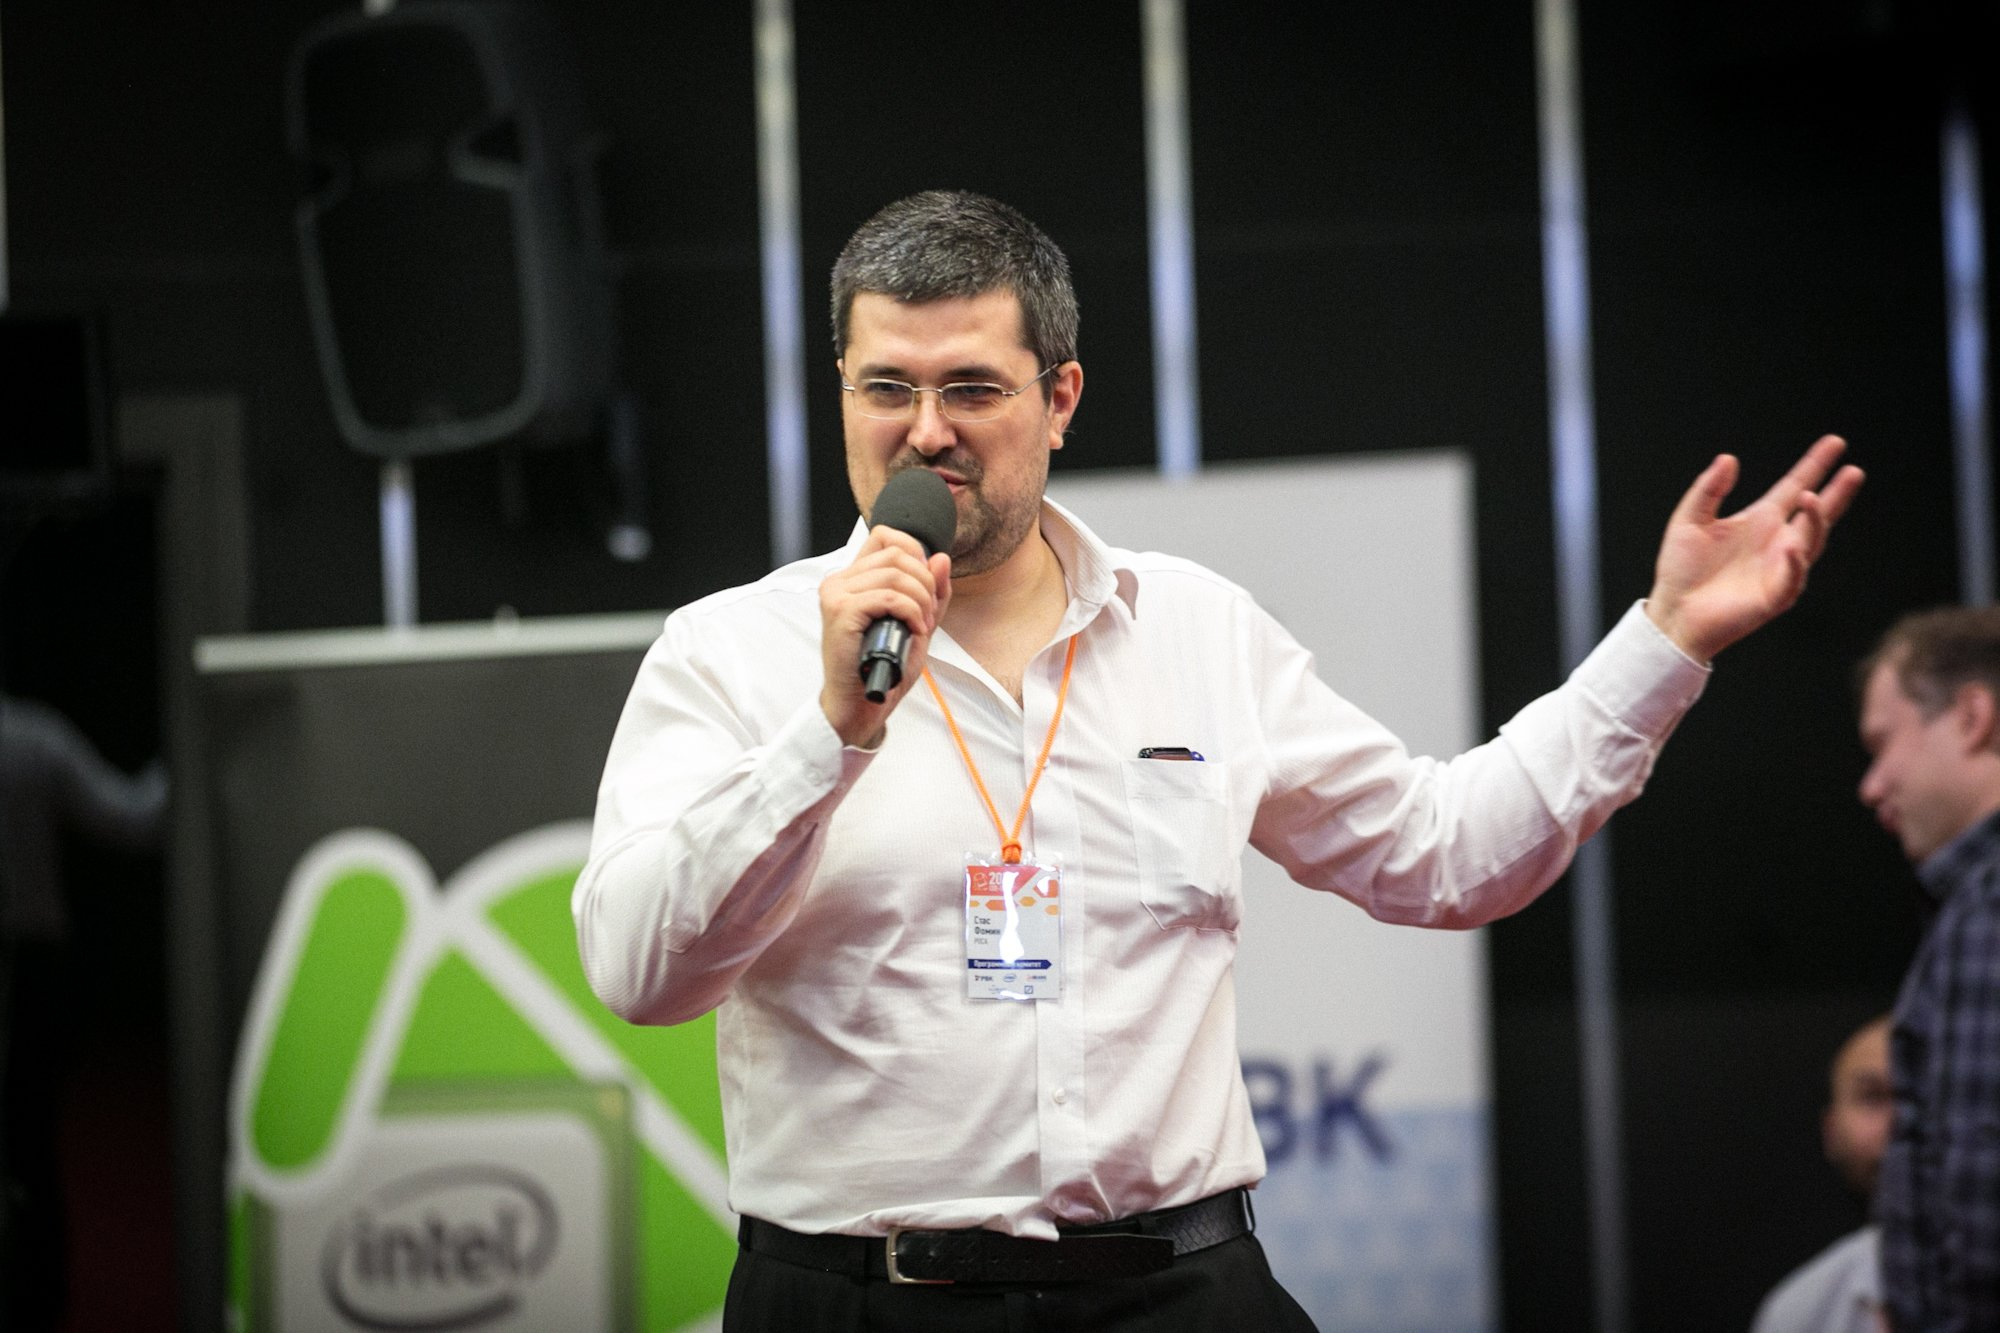 Stas Fomin at the mobile development section